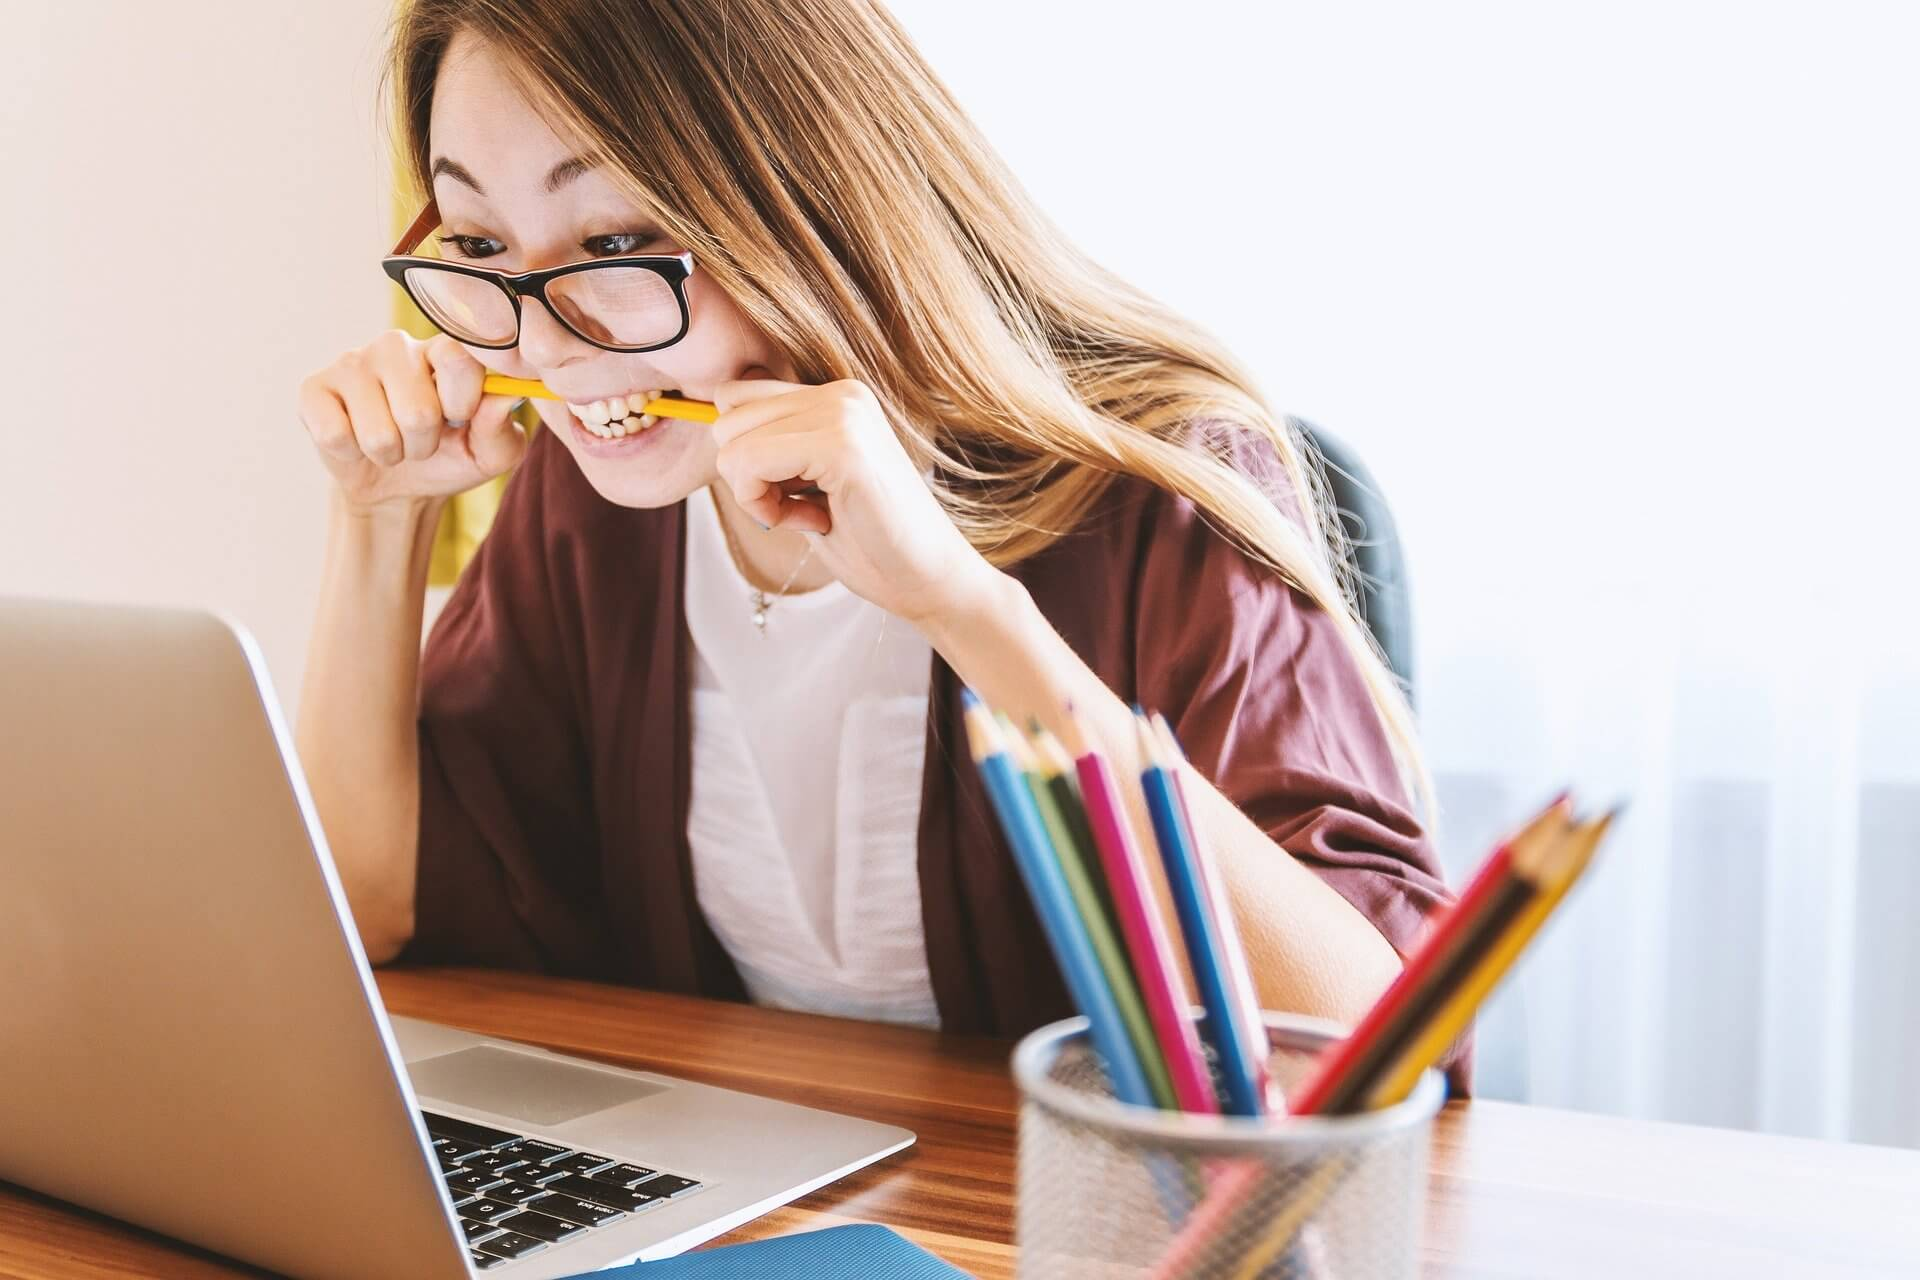 A frustrated woman, biting a pencil while staring at her laptop.